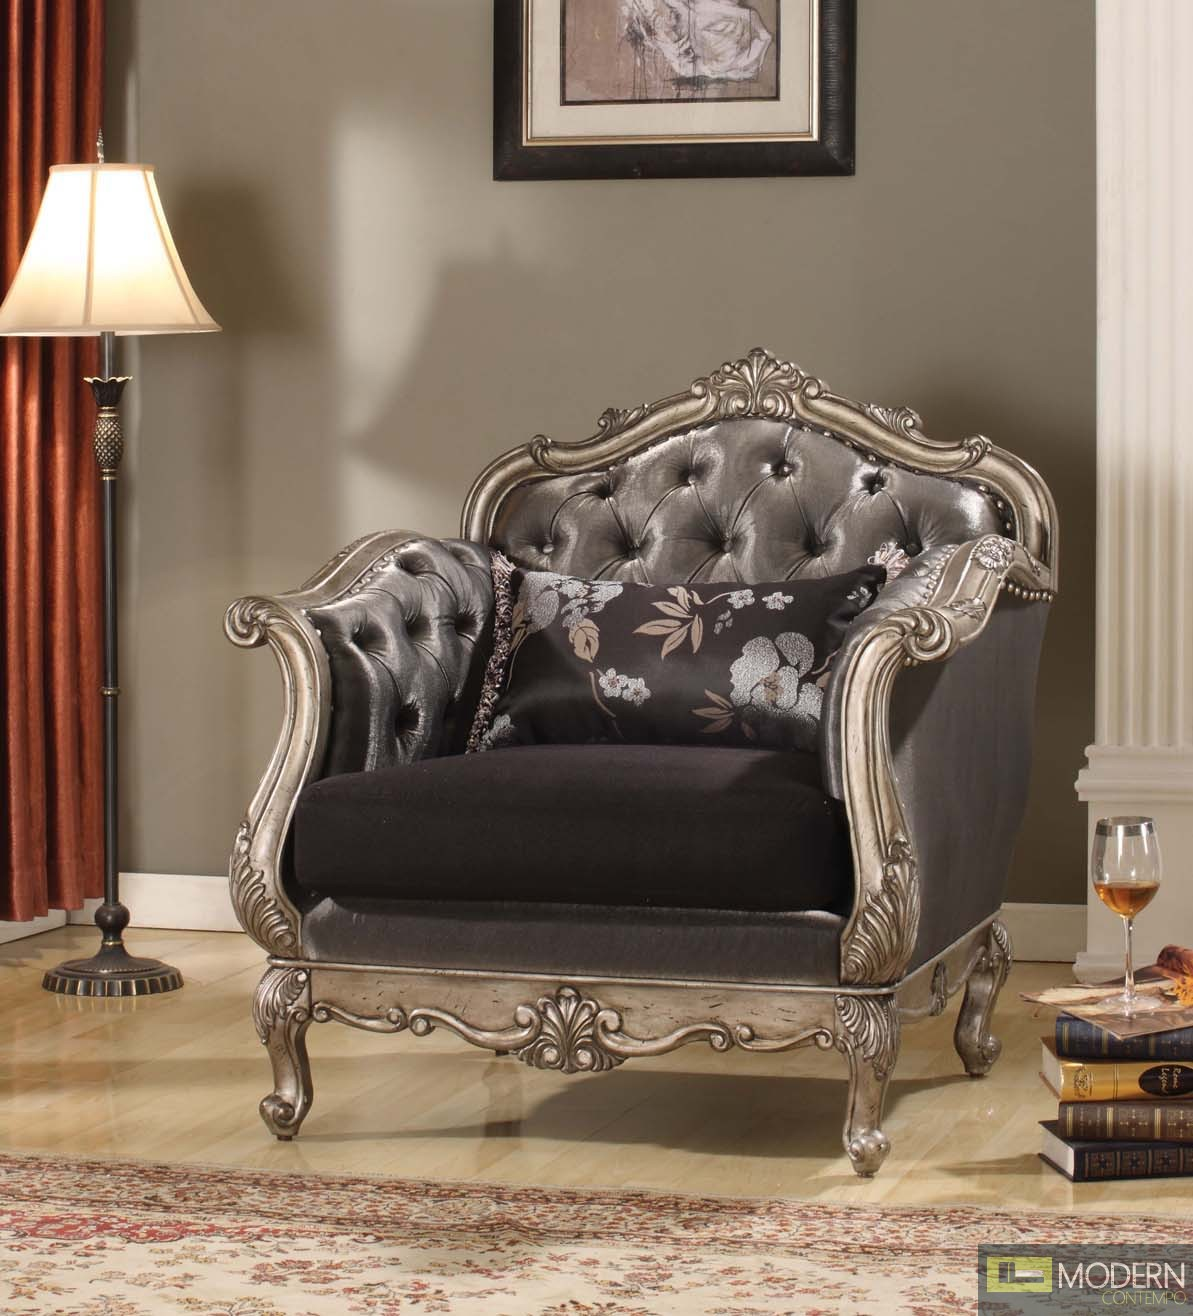 Modern Contempo French Rococo Luxury Sofa Traditional Living Room Set Mcac51540